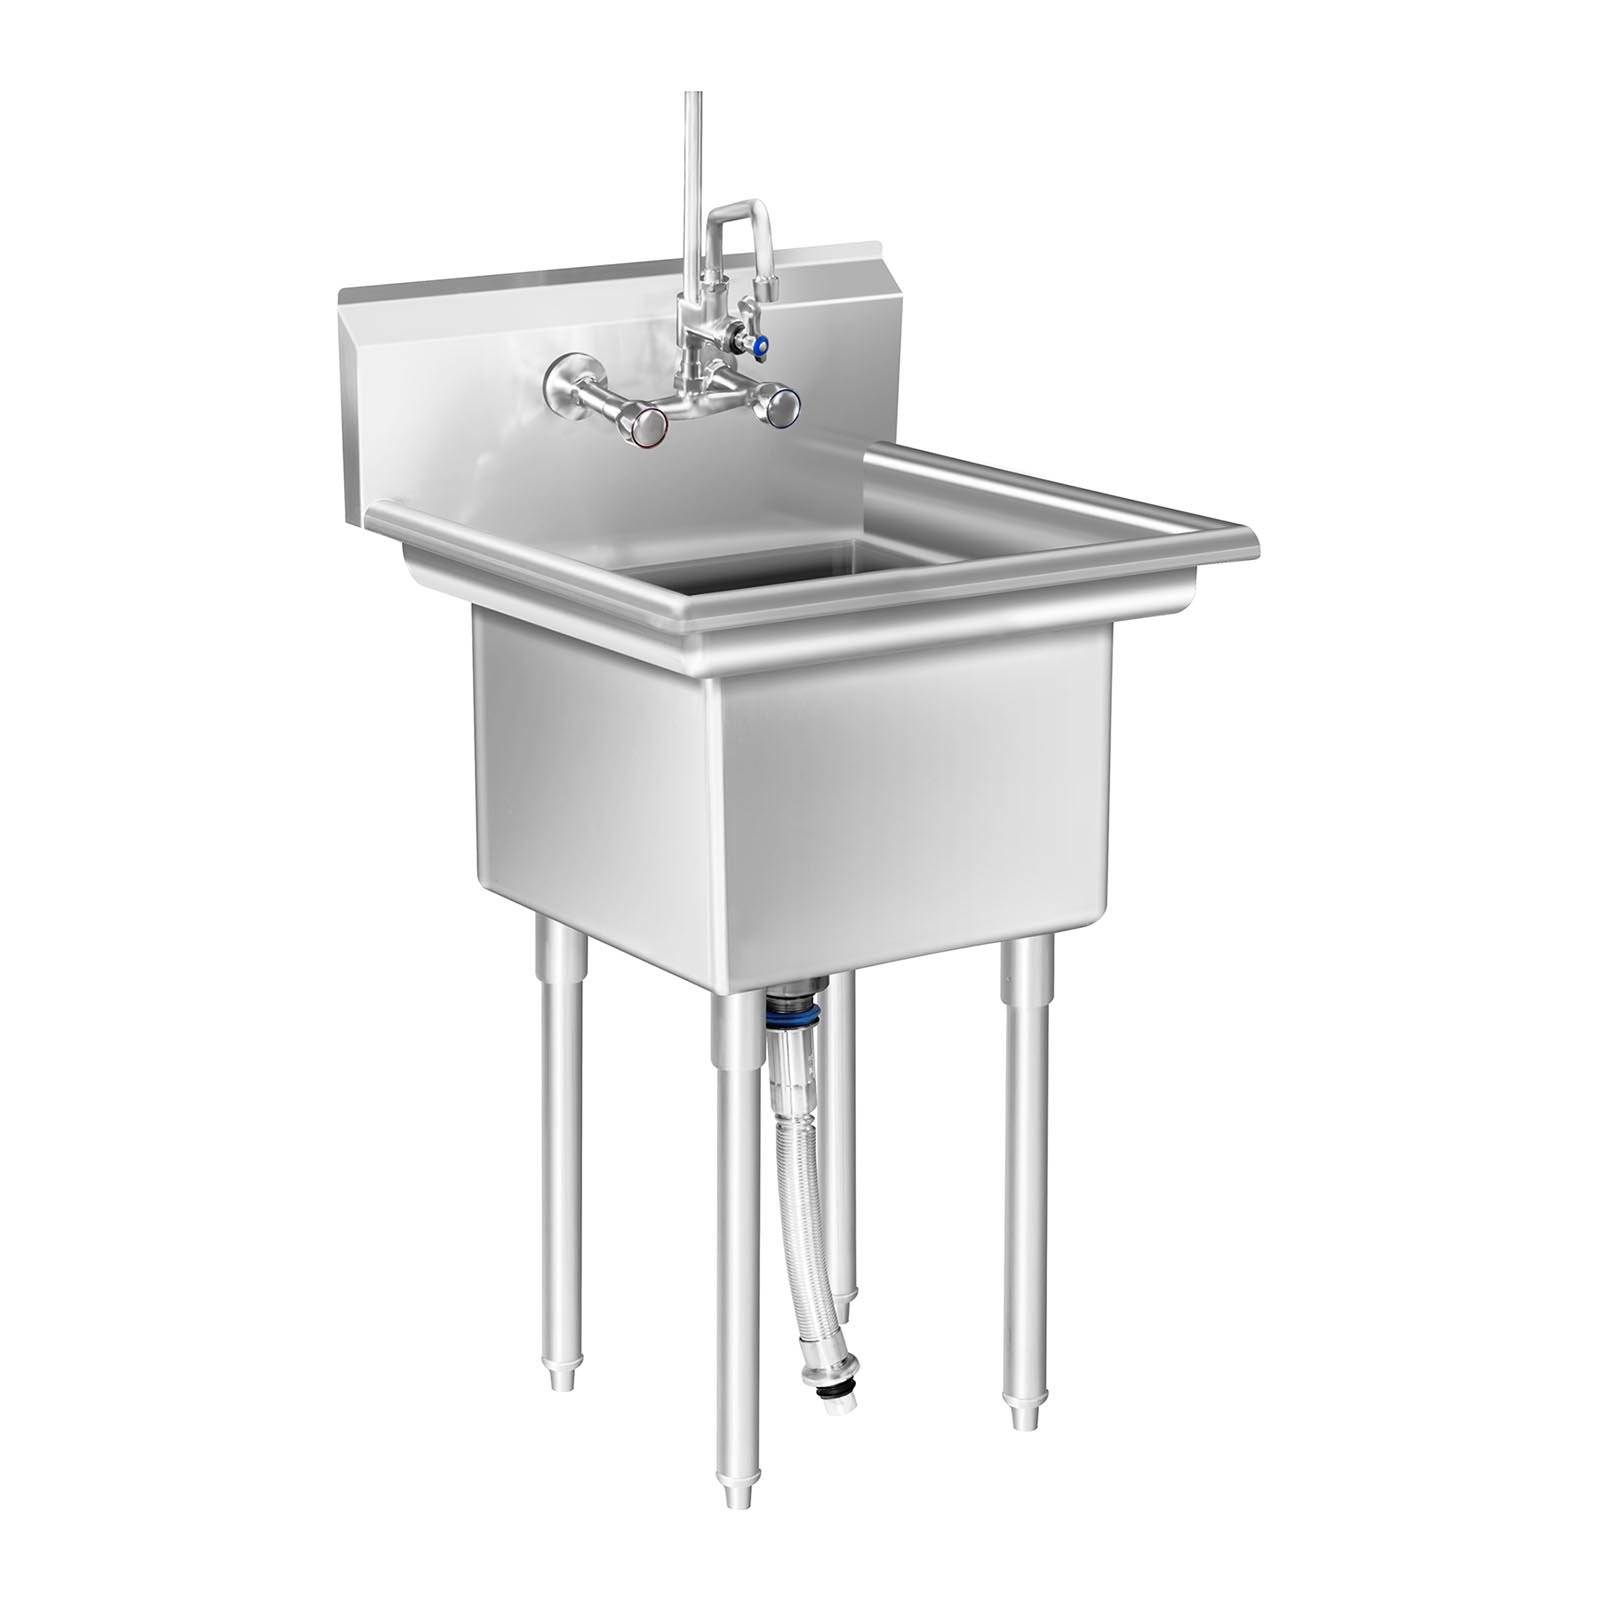 Royal Catering Evier professionnel – 1 Bac – 58 x 60 x 110 cm RCHS-7